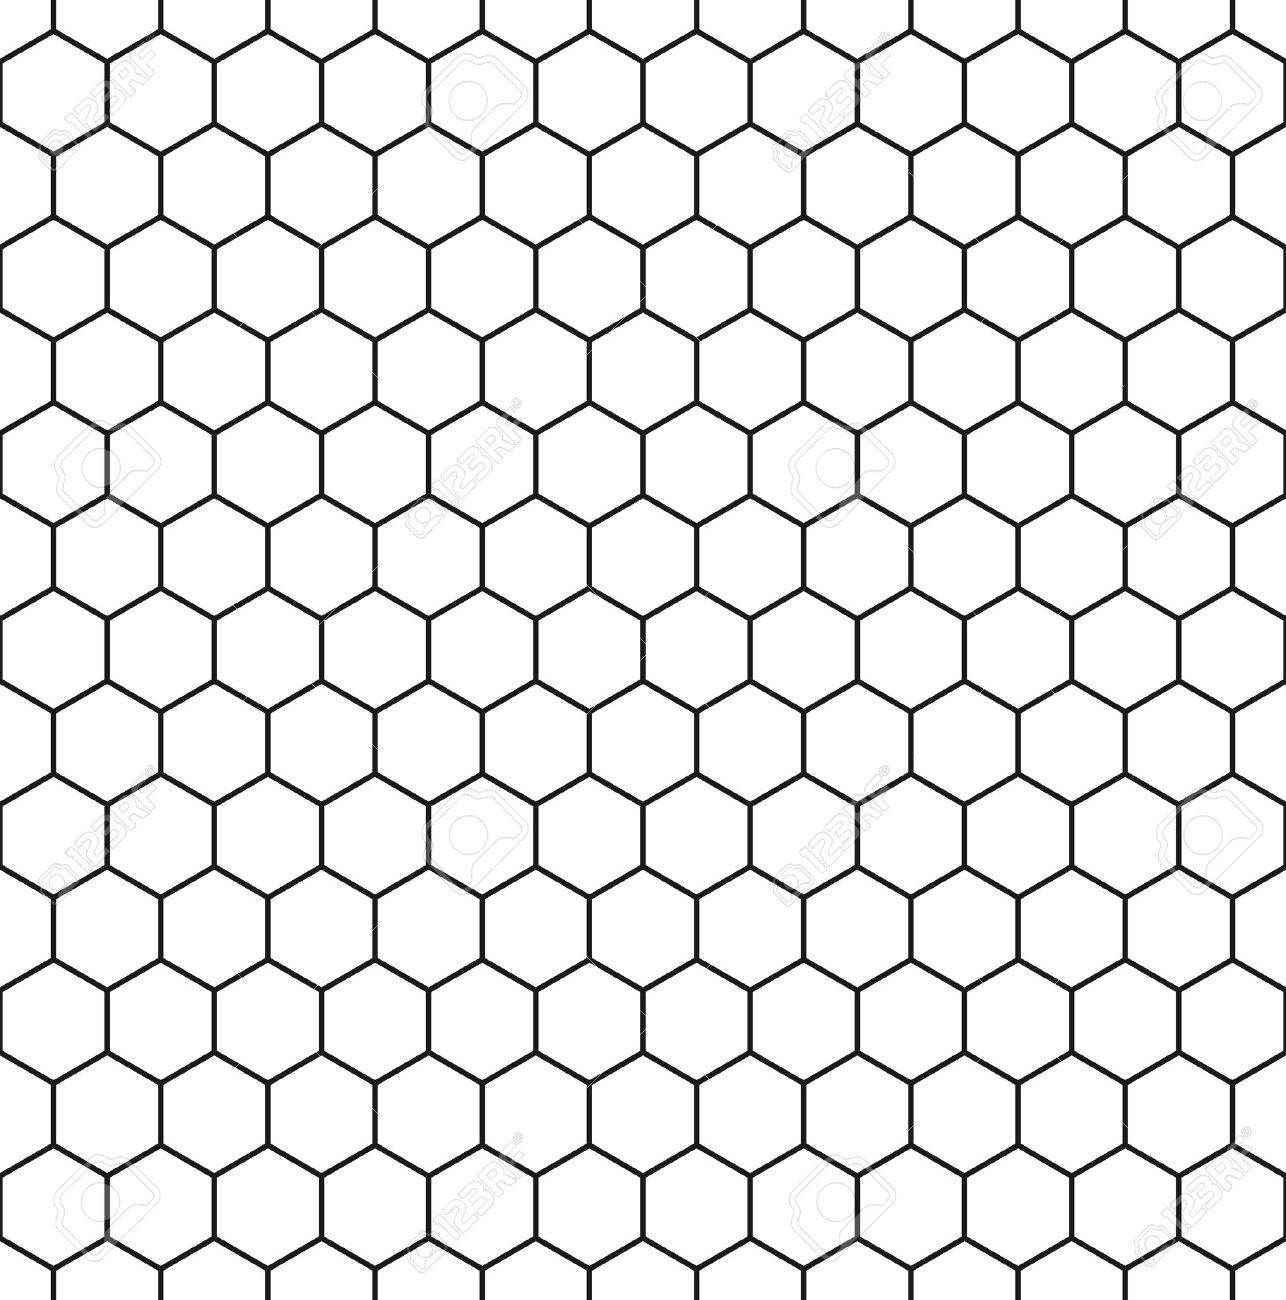 Seamless hexagonal background in white with dark grey borders. Vector illustration. - 53888578